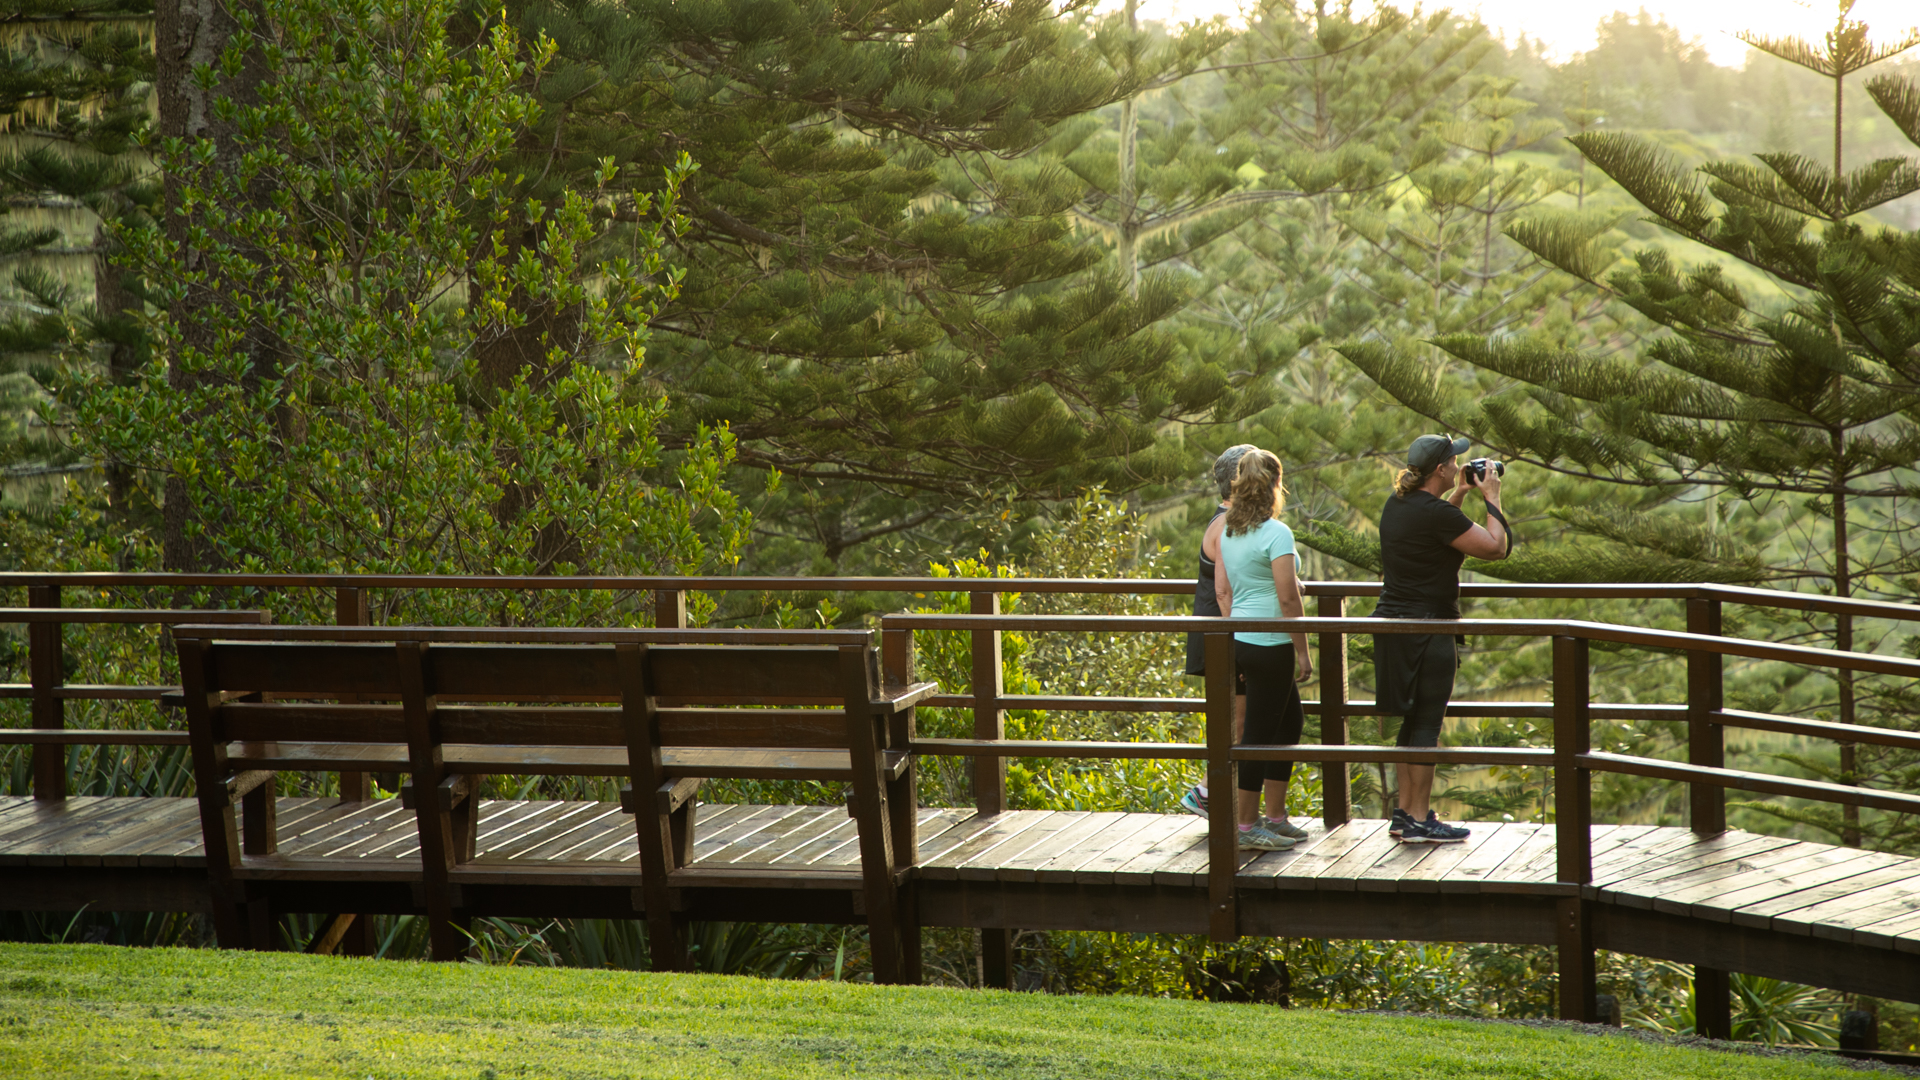 Three women stand on wooden boardwalk, lady on right taking photograph of Norfolk pines and other trees in background.